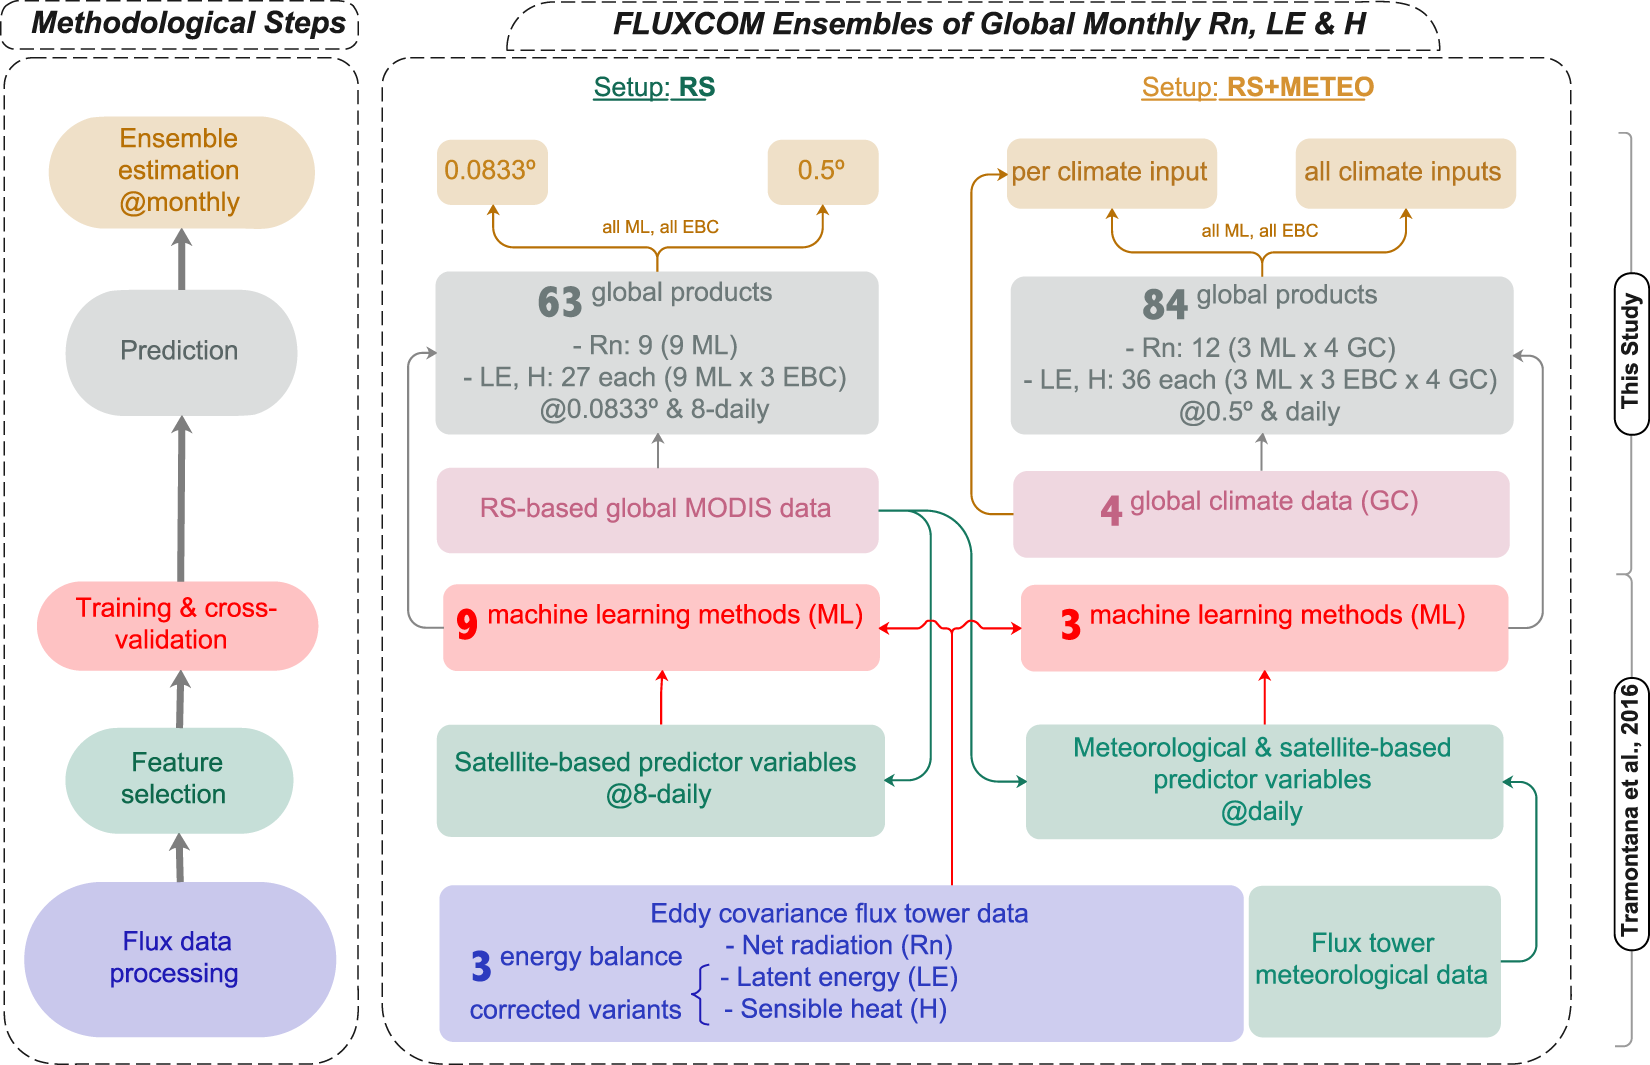 The FLUXCOM ensemble of global land-atmosphere energy fluxes